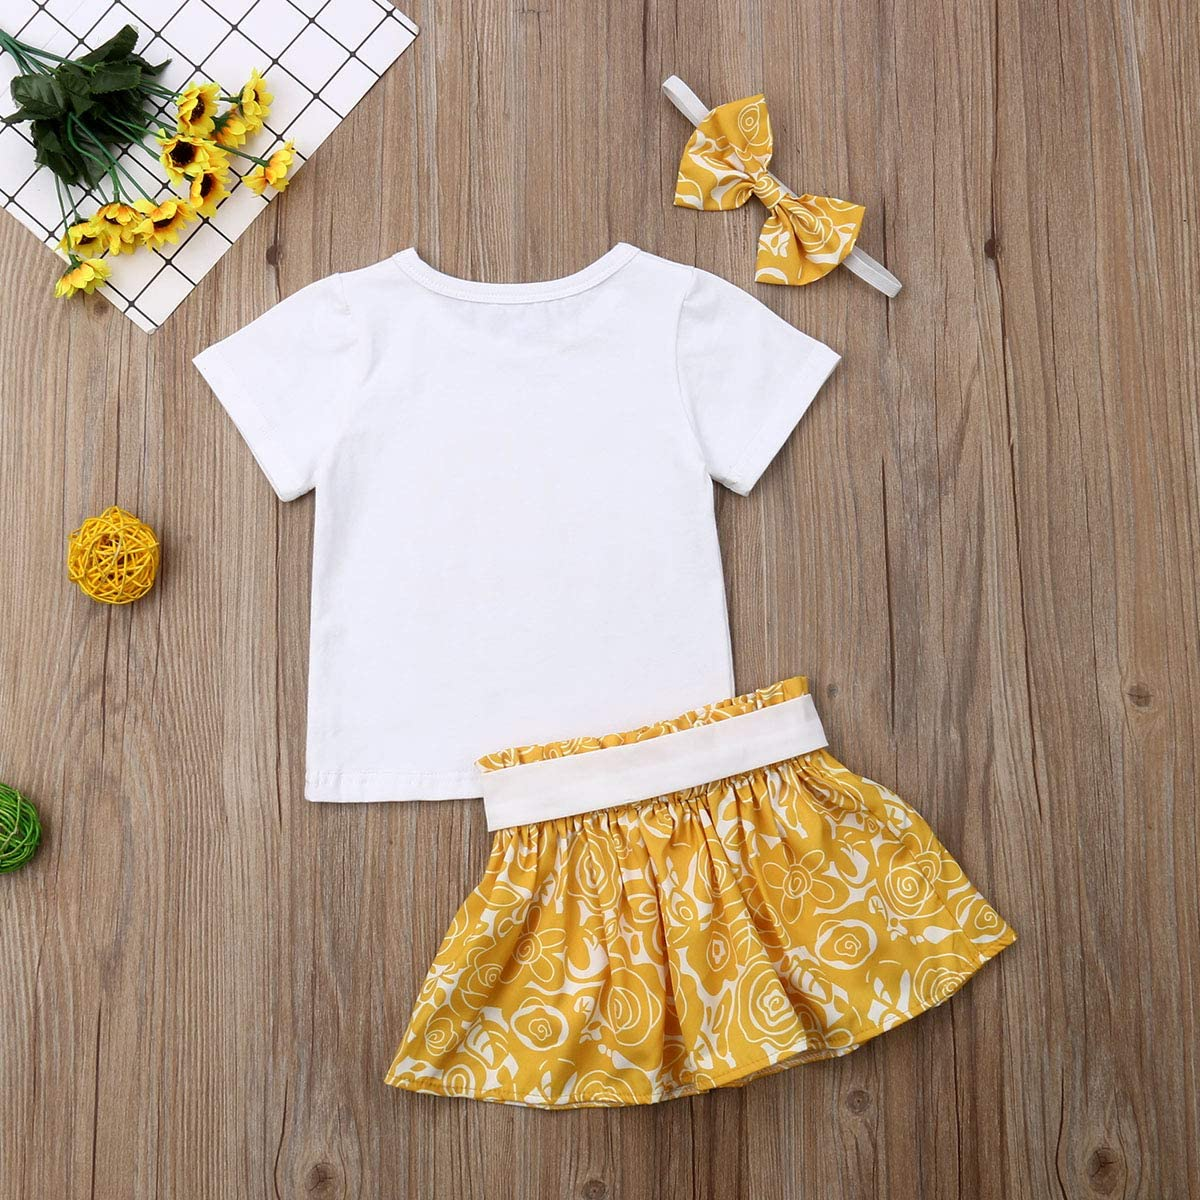 Bow-Knot Headband Outfit Set You are My Sunshine Letter and Sun Top Blouse Yellow Flower Ruffle Skirt Dress